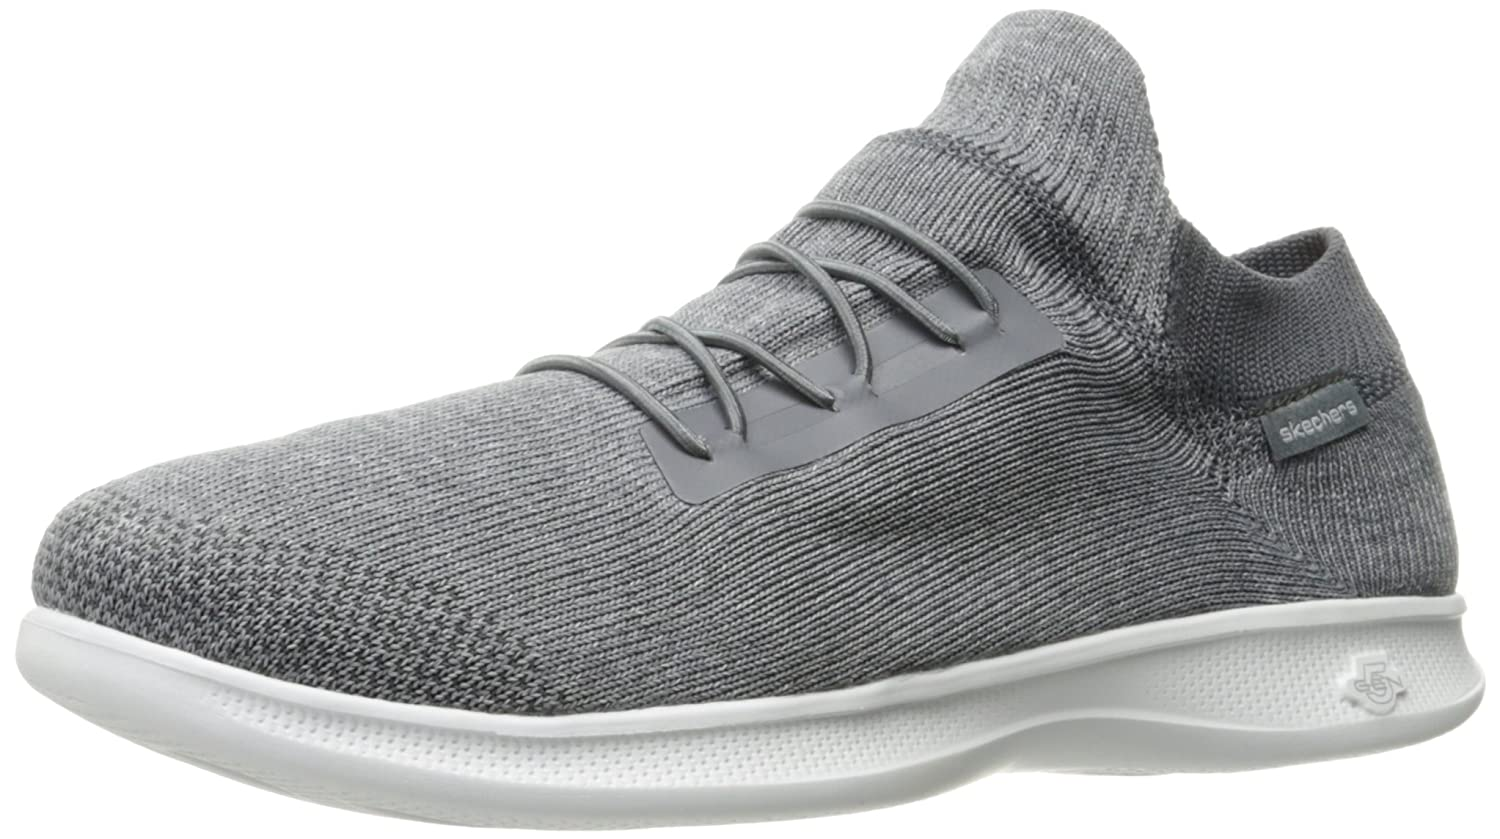 Skechers Formateurs Go Step Lite-Effortless, Formateurs Gris Femme, Noir Noir Gris (Grey) 369b32a - latesttechnology.space